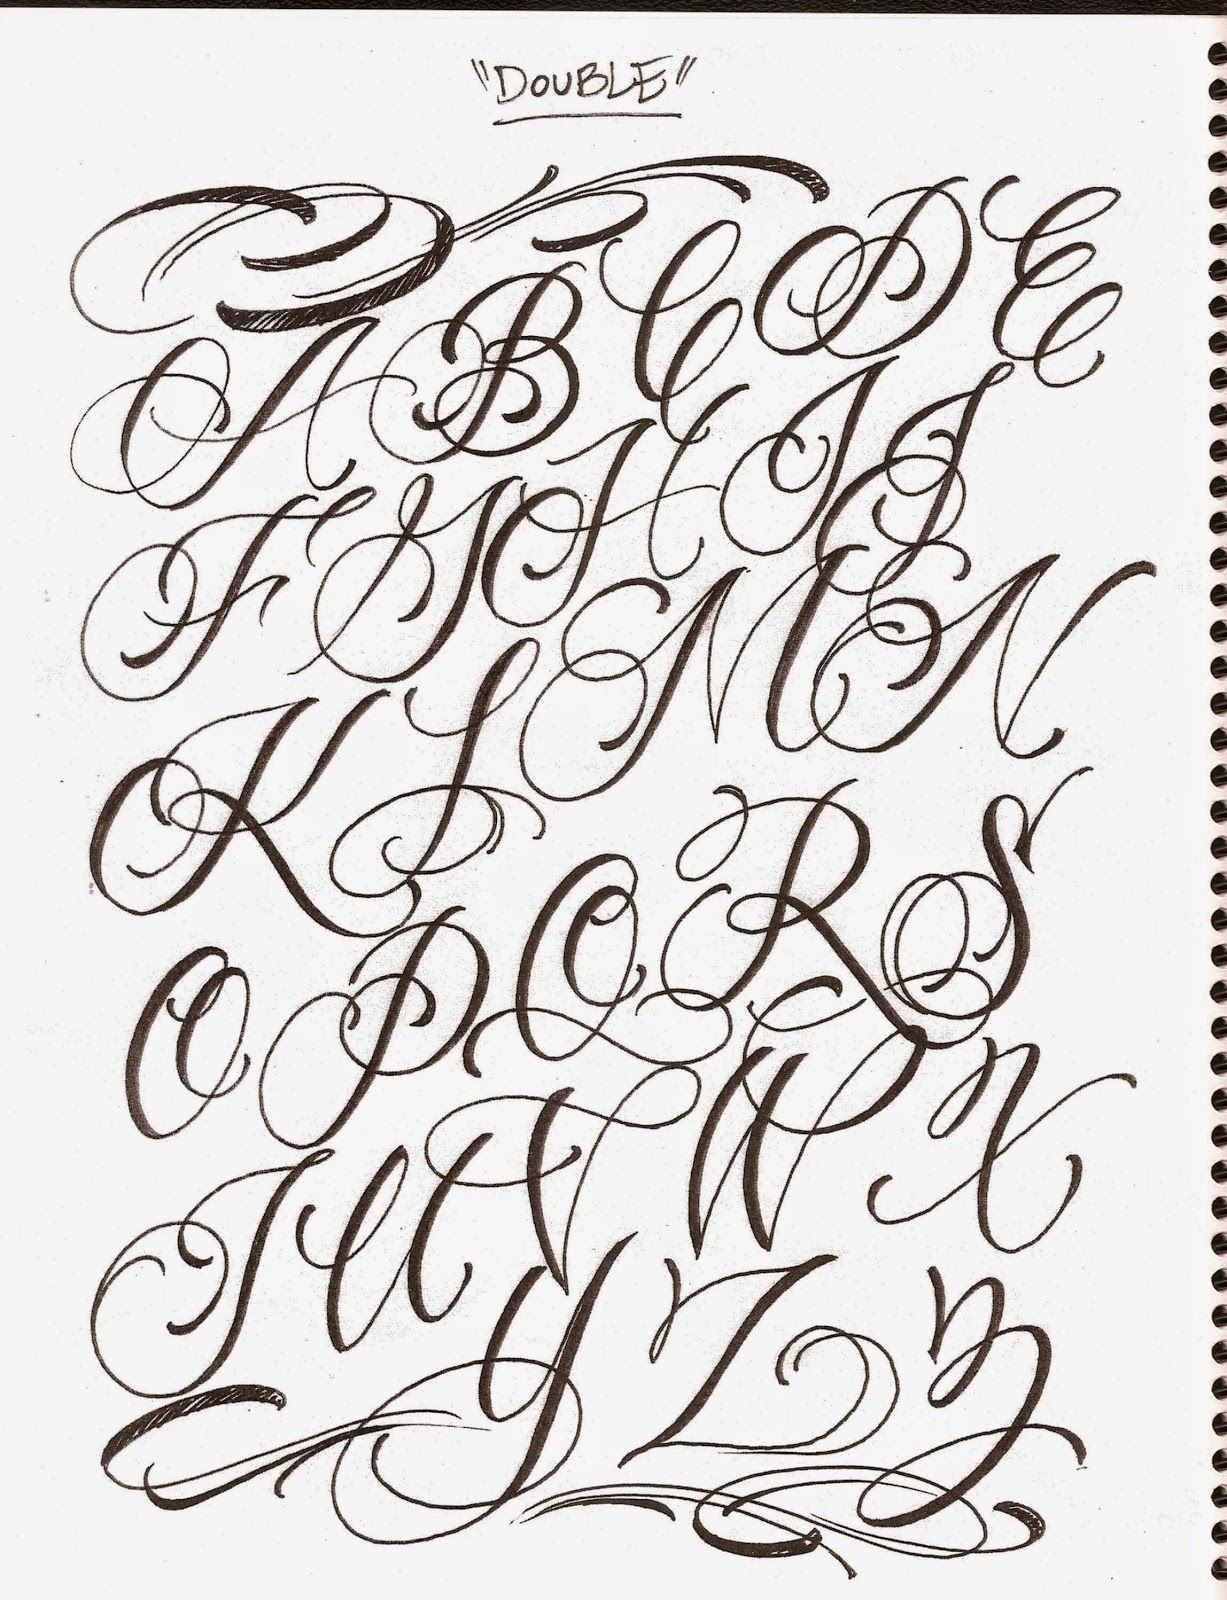 Calligraphy Tattoo Pinterest Pin By Oapaos Roosl On Tatt Pinterest Letras Caligrafía And